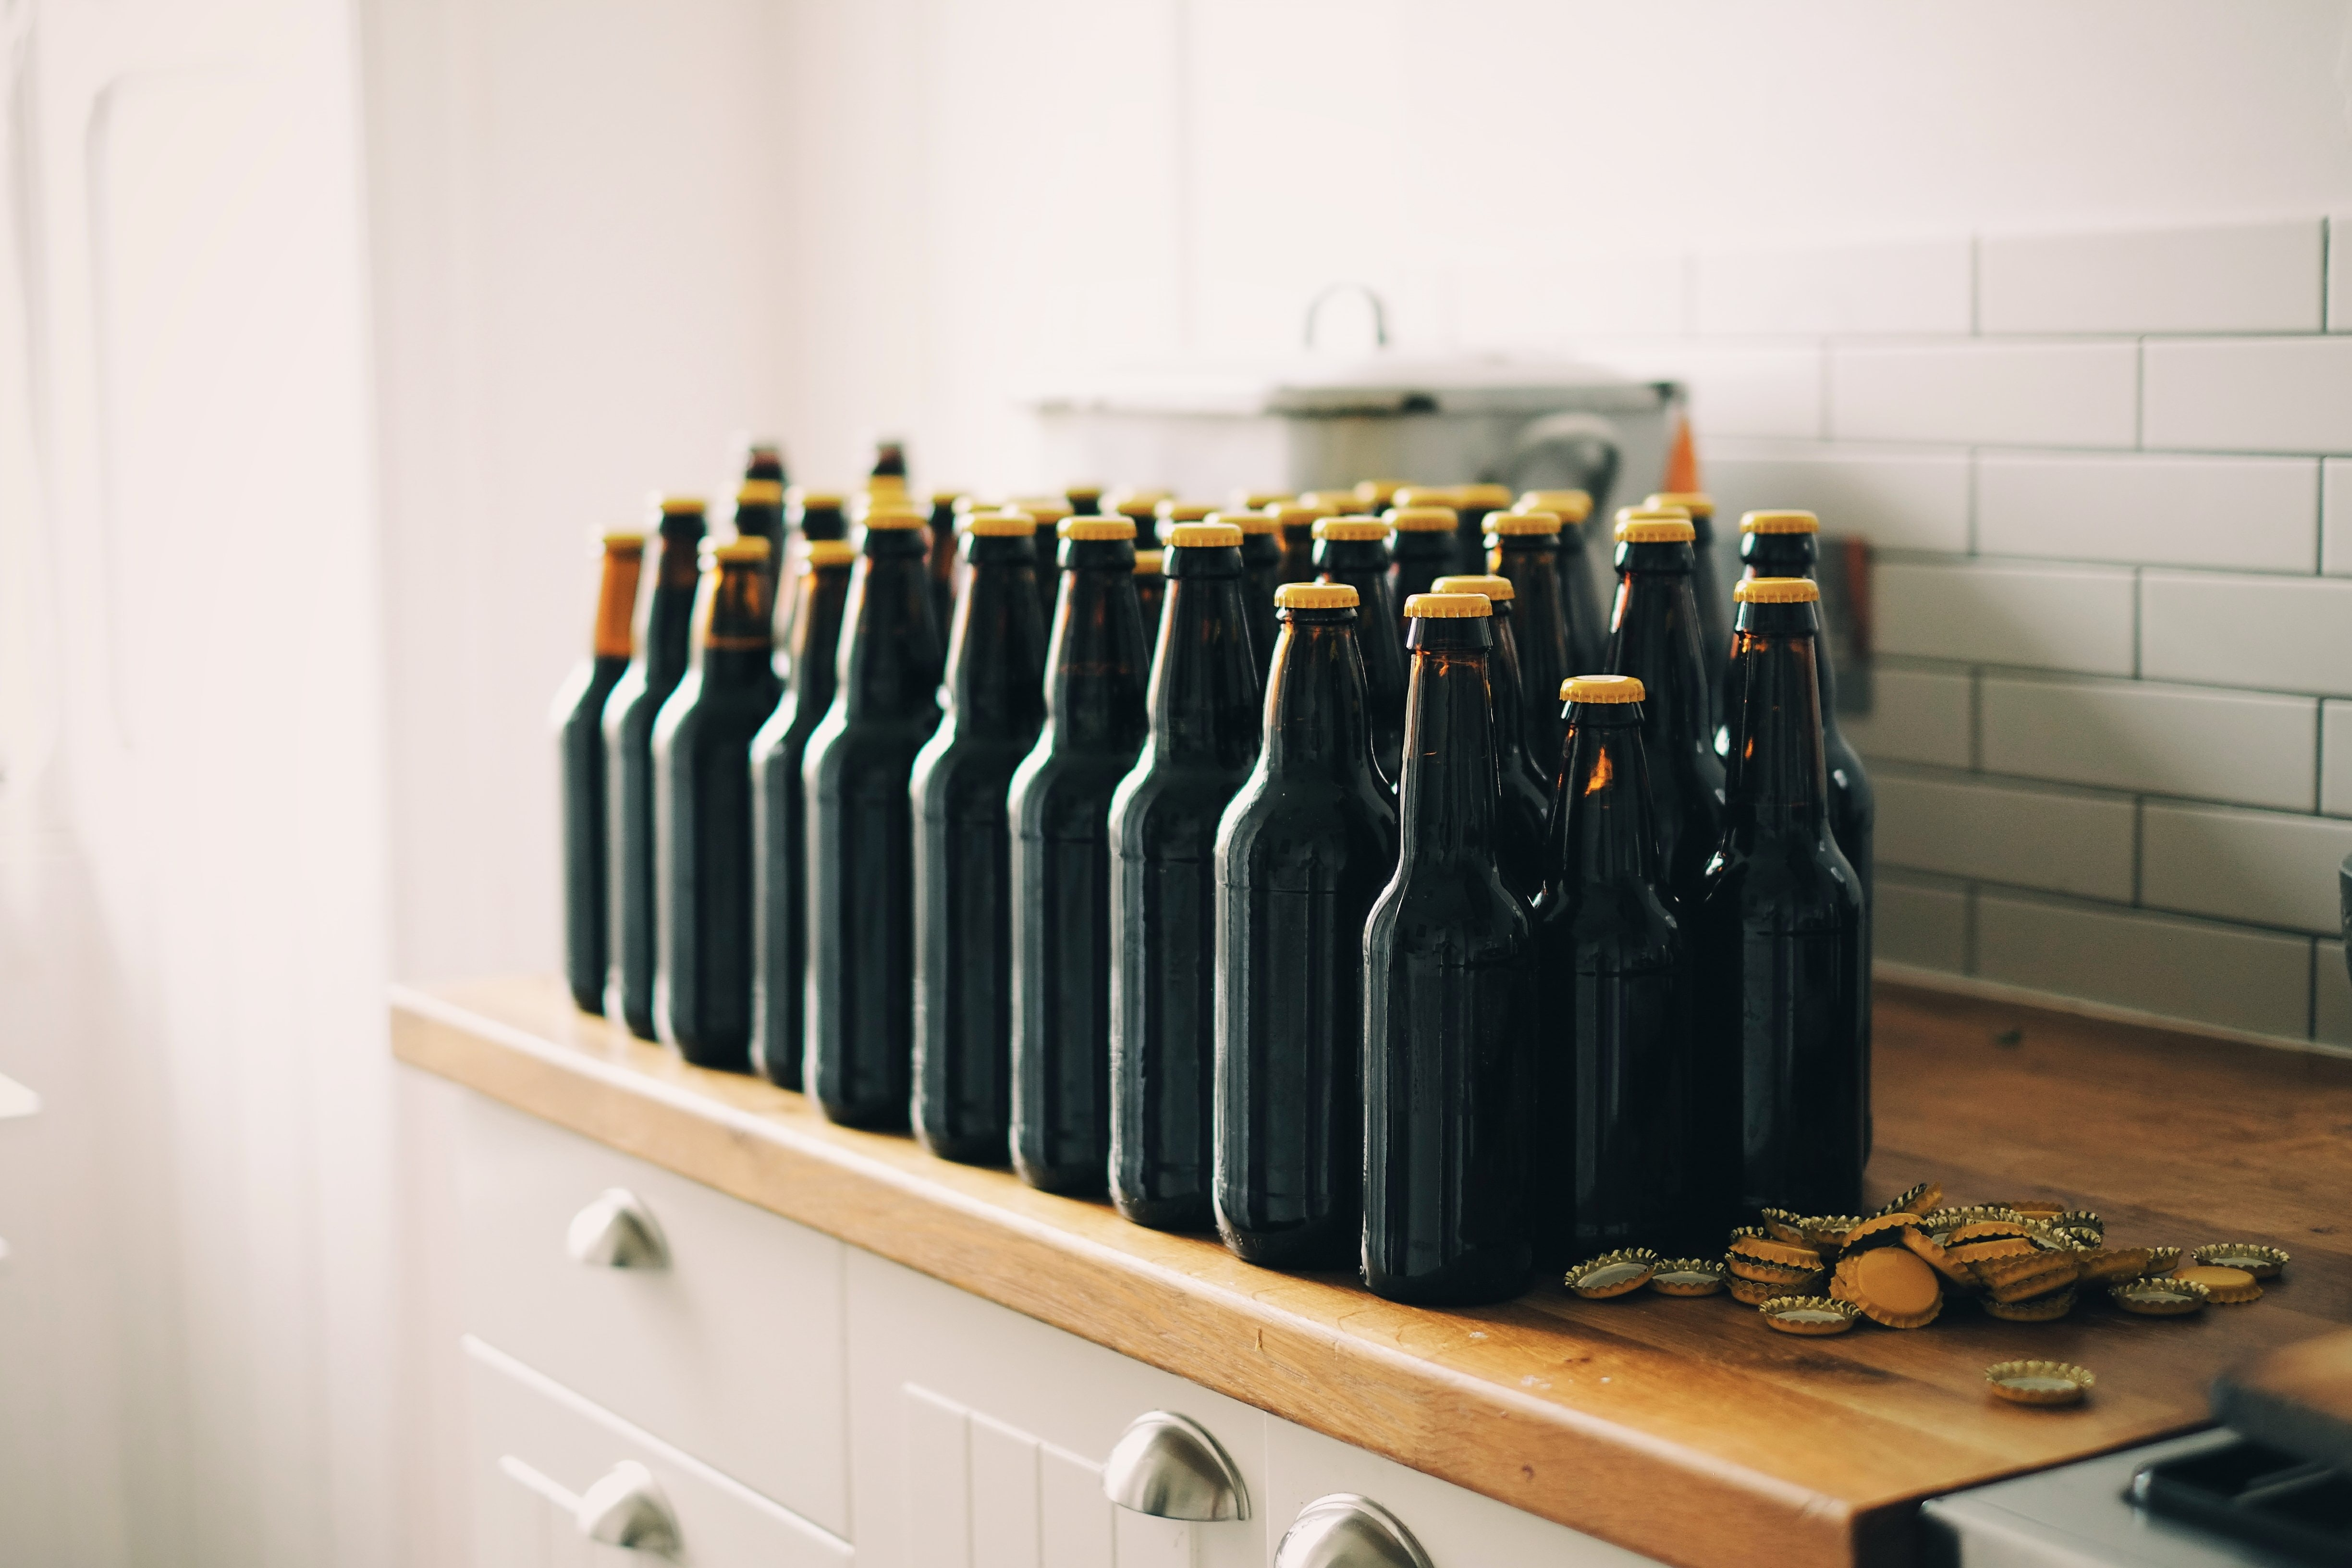 black tinted glass bottle lot on brown and white wooden cabinet